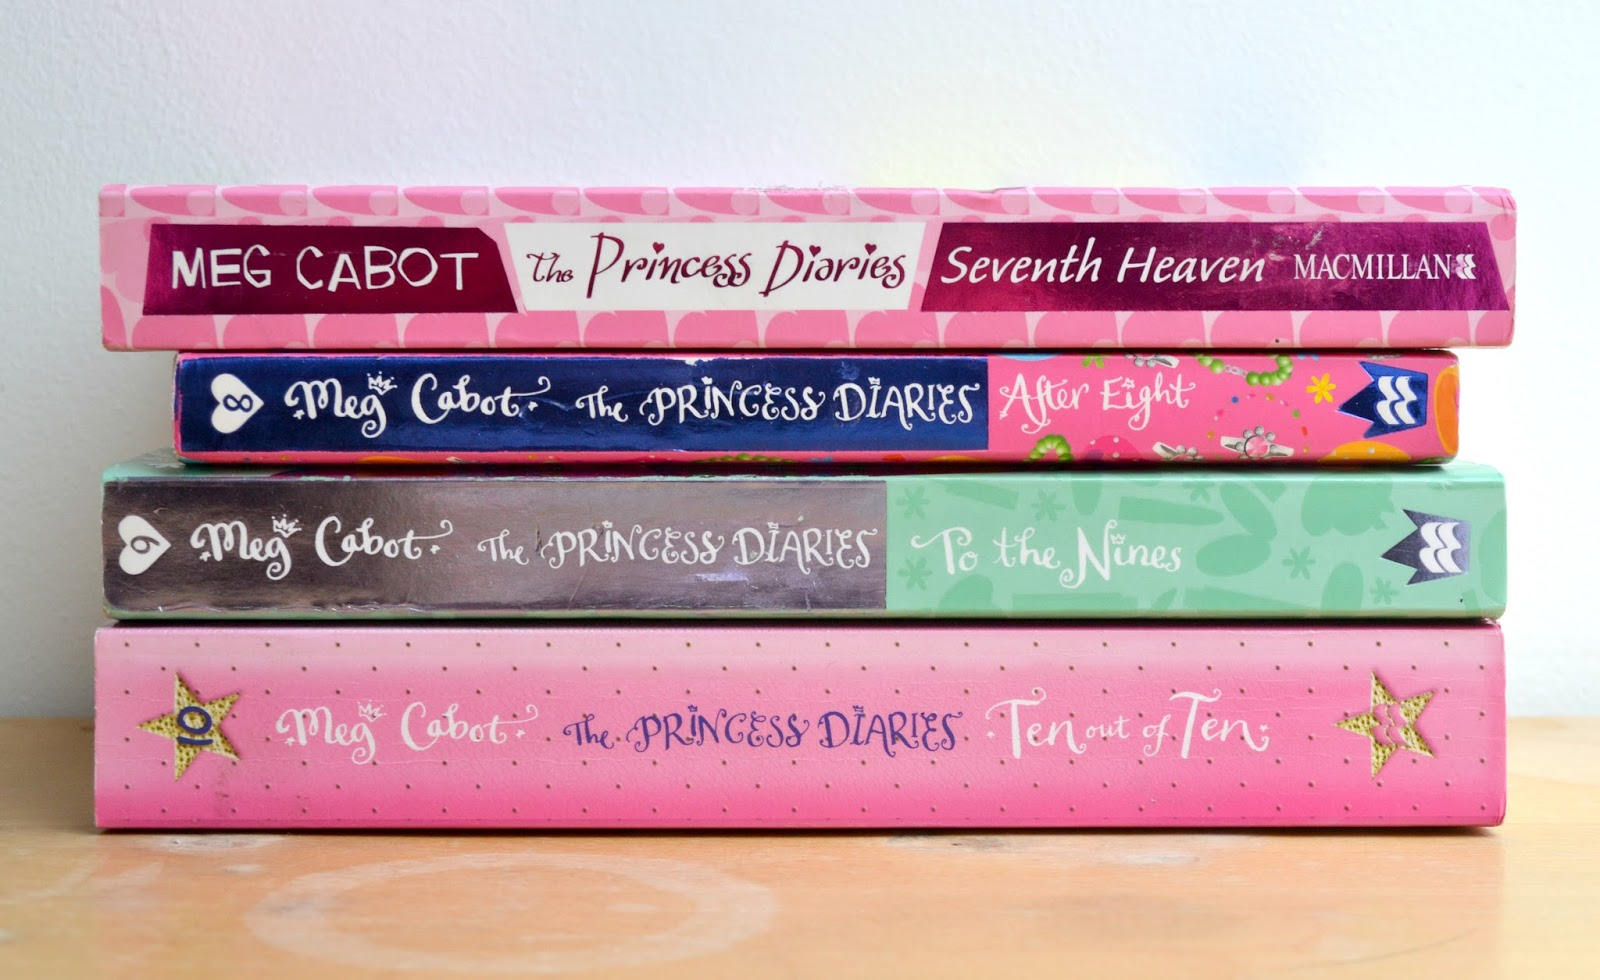 Books 7, 8, 9, and 10 of the Princess Diaries series.